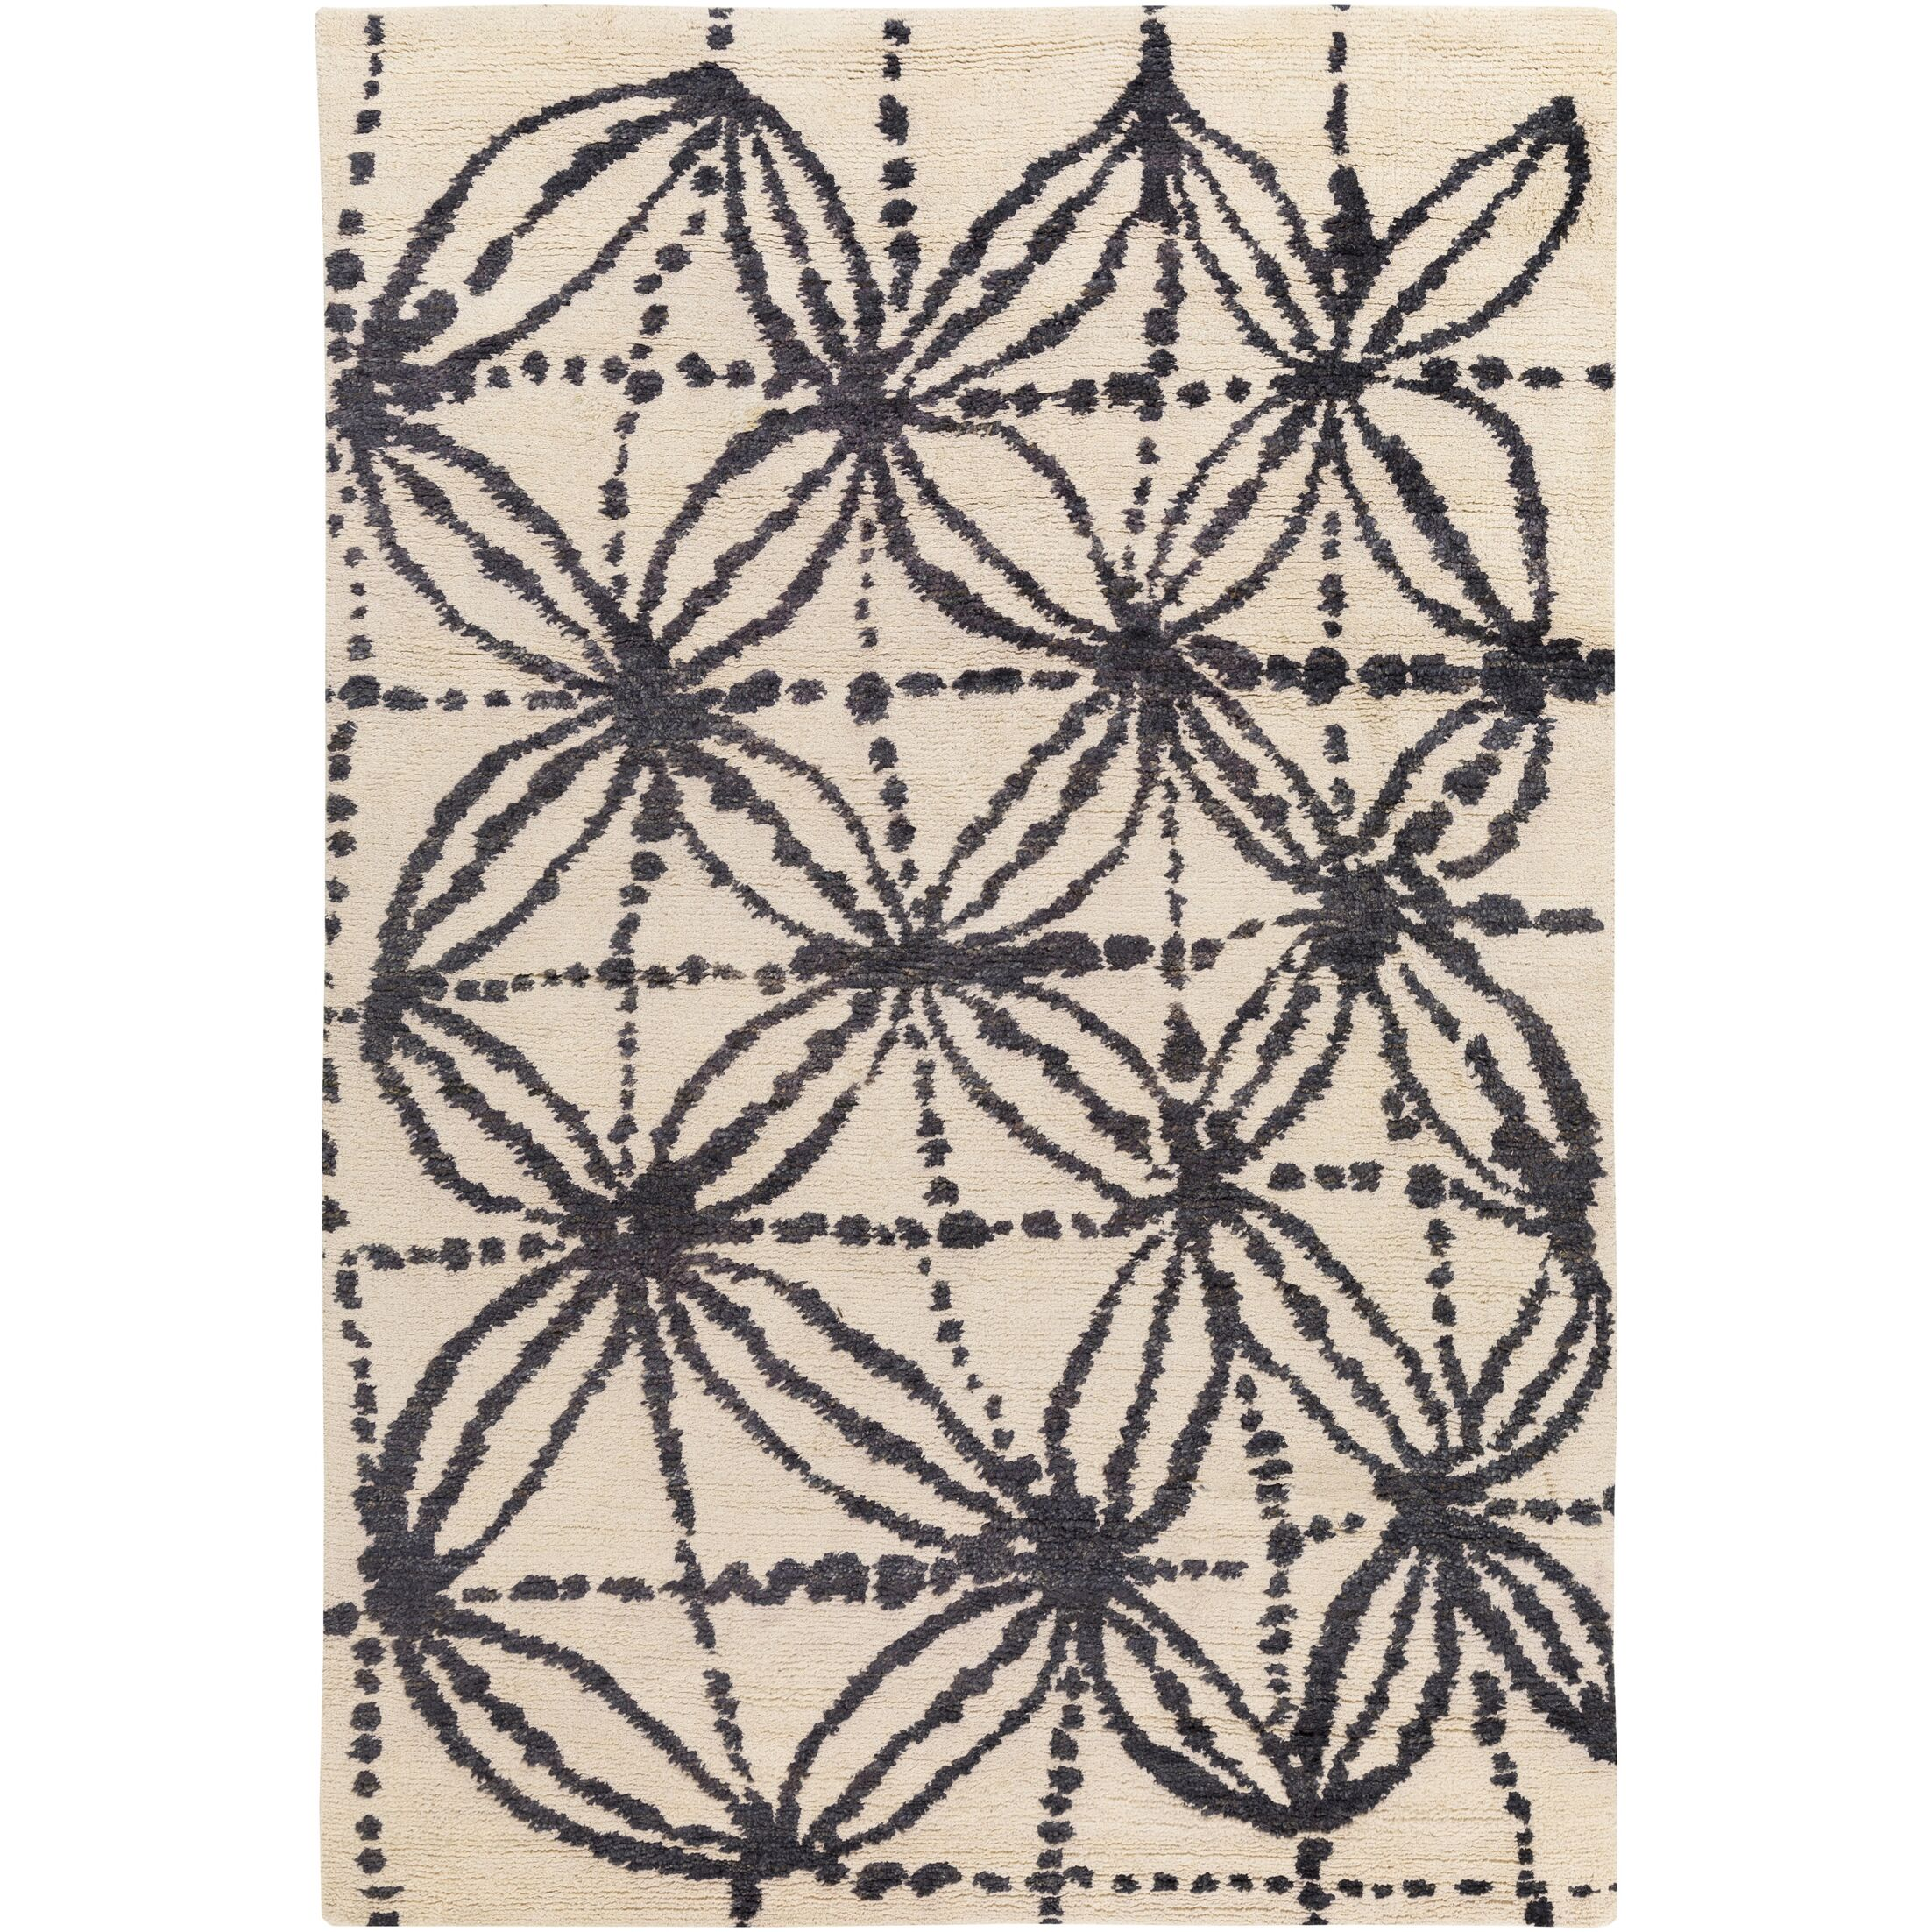 Orinocco Hand-Woven Black/Beige Area Rug Rug Size: Rectangle 2' x 3'